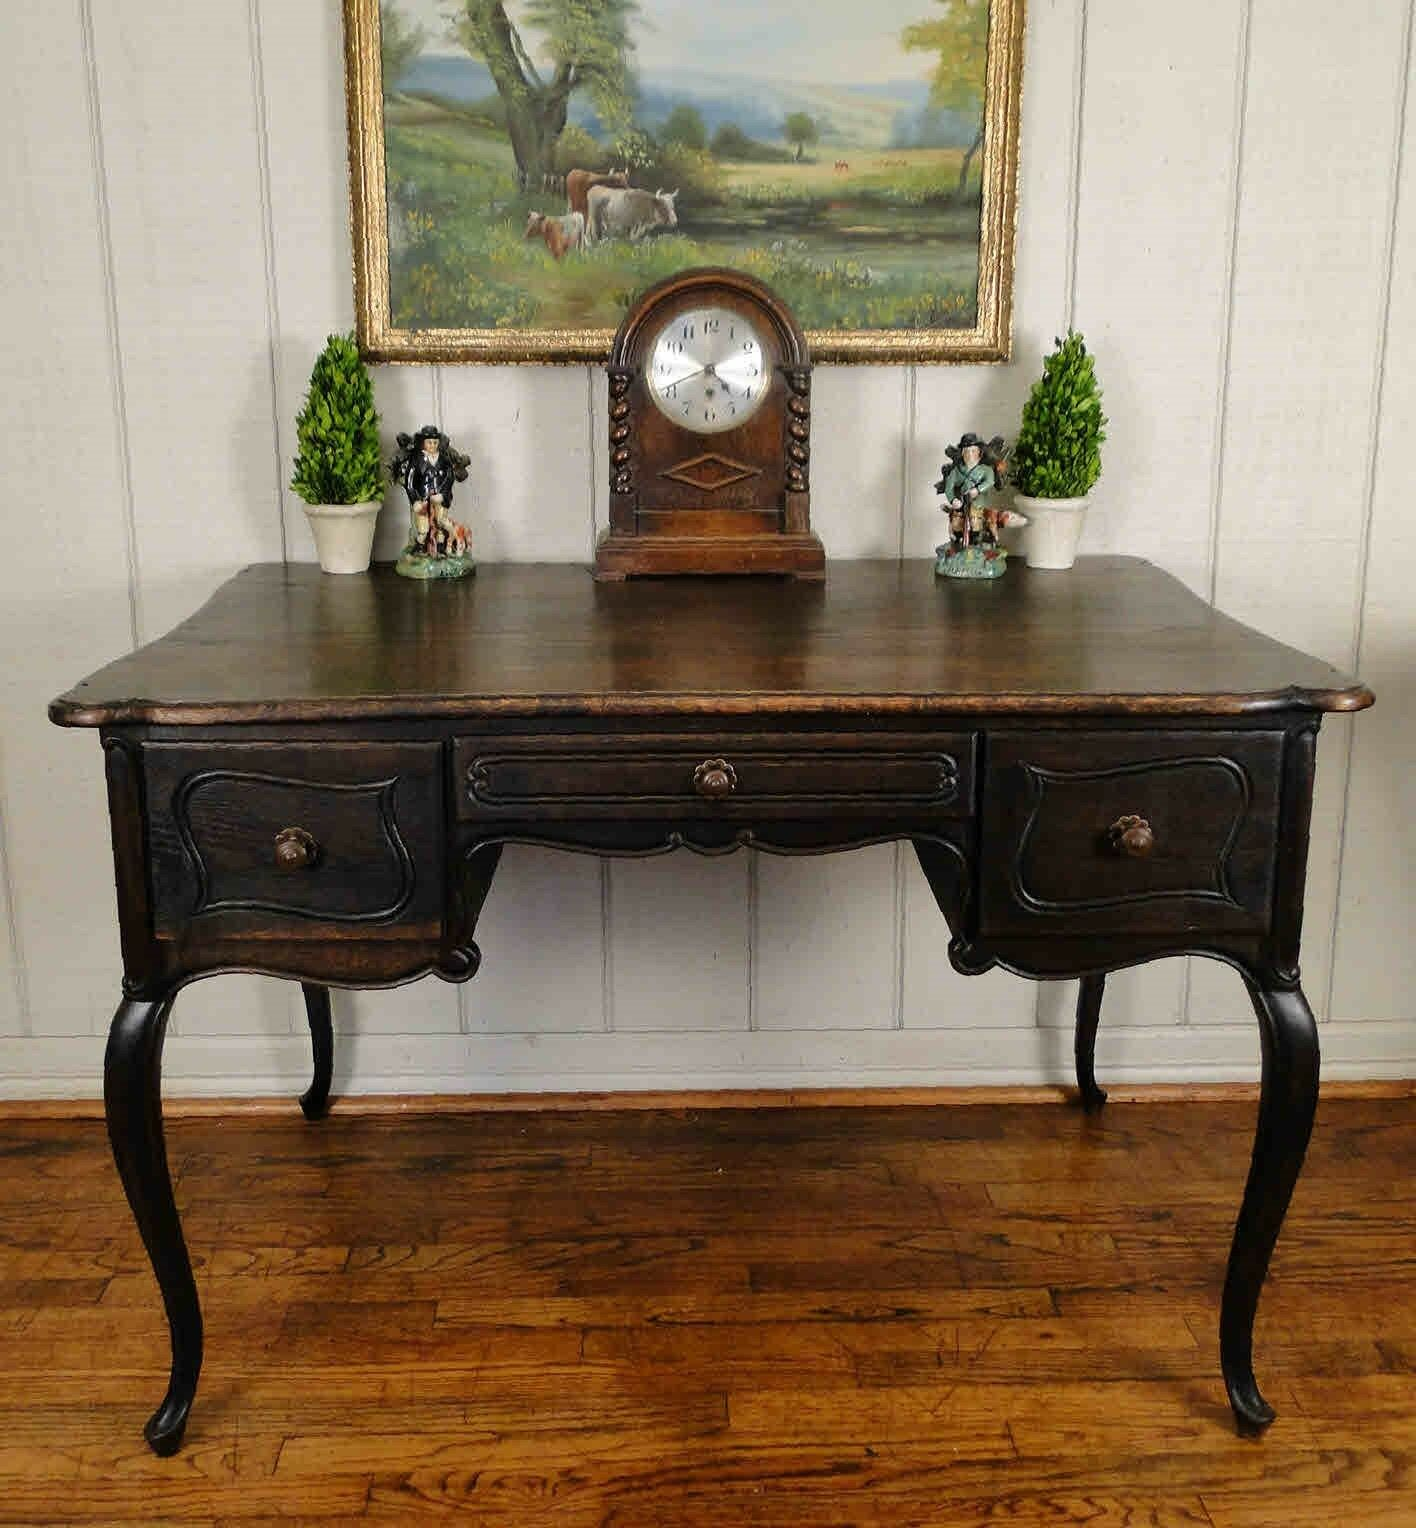 Antique French Carved Oak Barley Twist DESK SECRETARY Partners Table Library